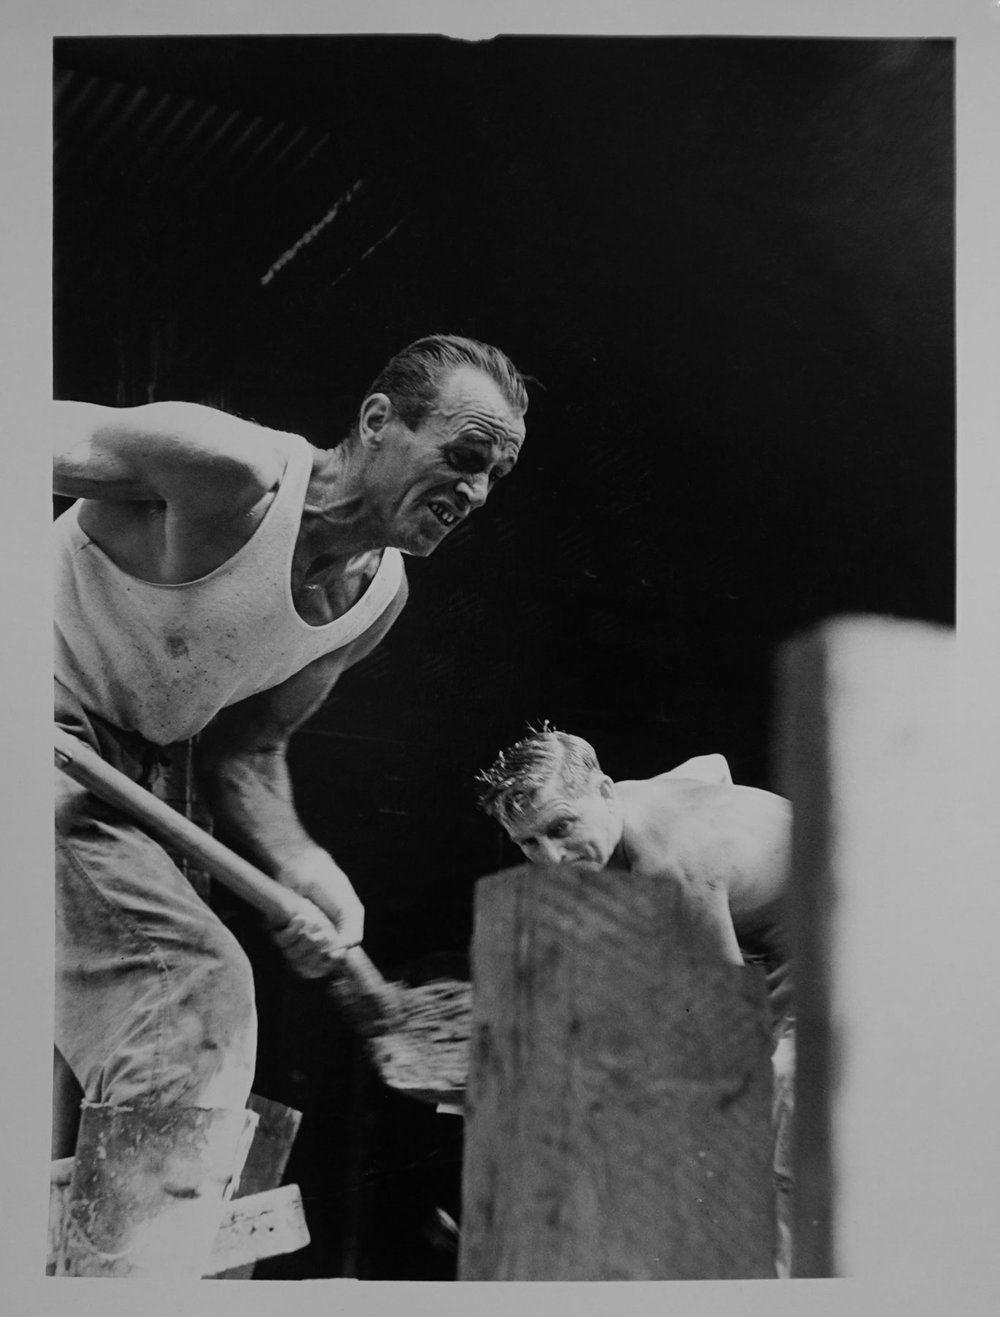 21. Richard Woldendorp, 'Concrete Workers, Perth WA', BW36, taken and printed in 1961, Vintage Print, 3rd Prize 1961 Craven 'A' National Portrait Competion